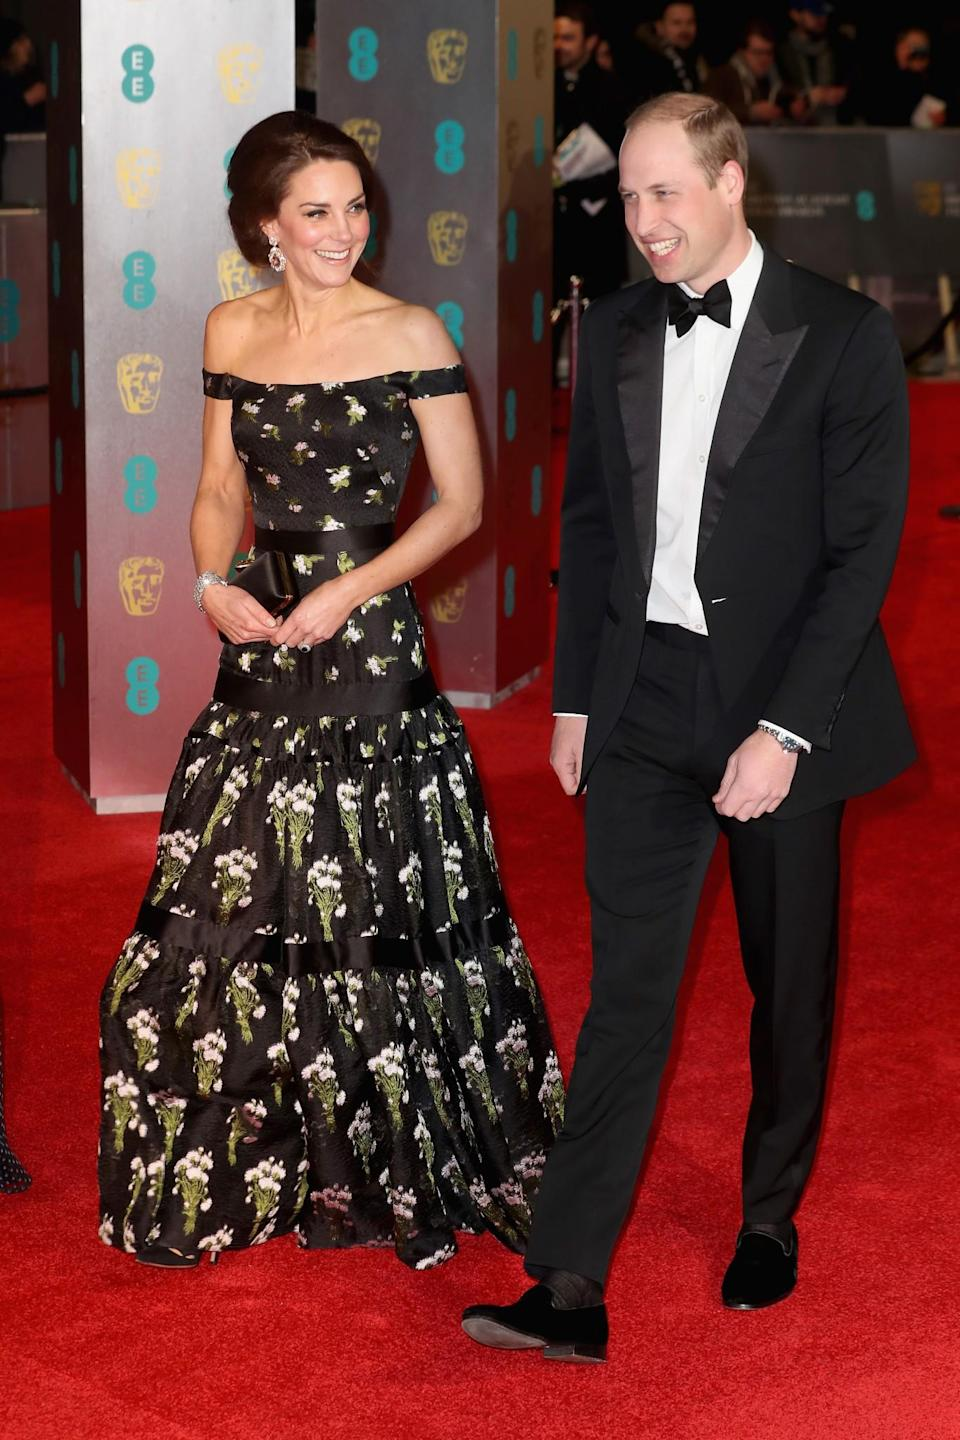 <p>For the 2017 BAFTAs, Kate chose a rather gothic gown by Alexander McQueen. The dress was printed with flowers and designed in an off-the-shoulder style. The Duchess paired the dark ensemble with black pumps and a matching satin McQueen clutch.<br><i>[Photo: PA]</i> </p>